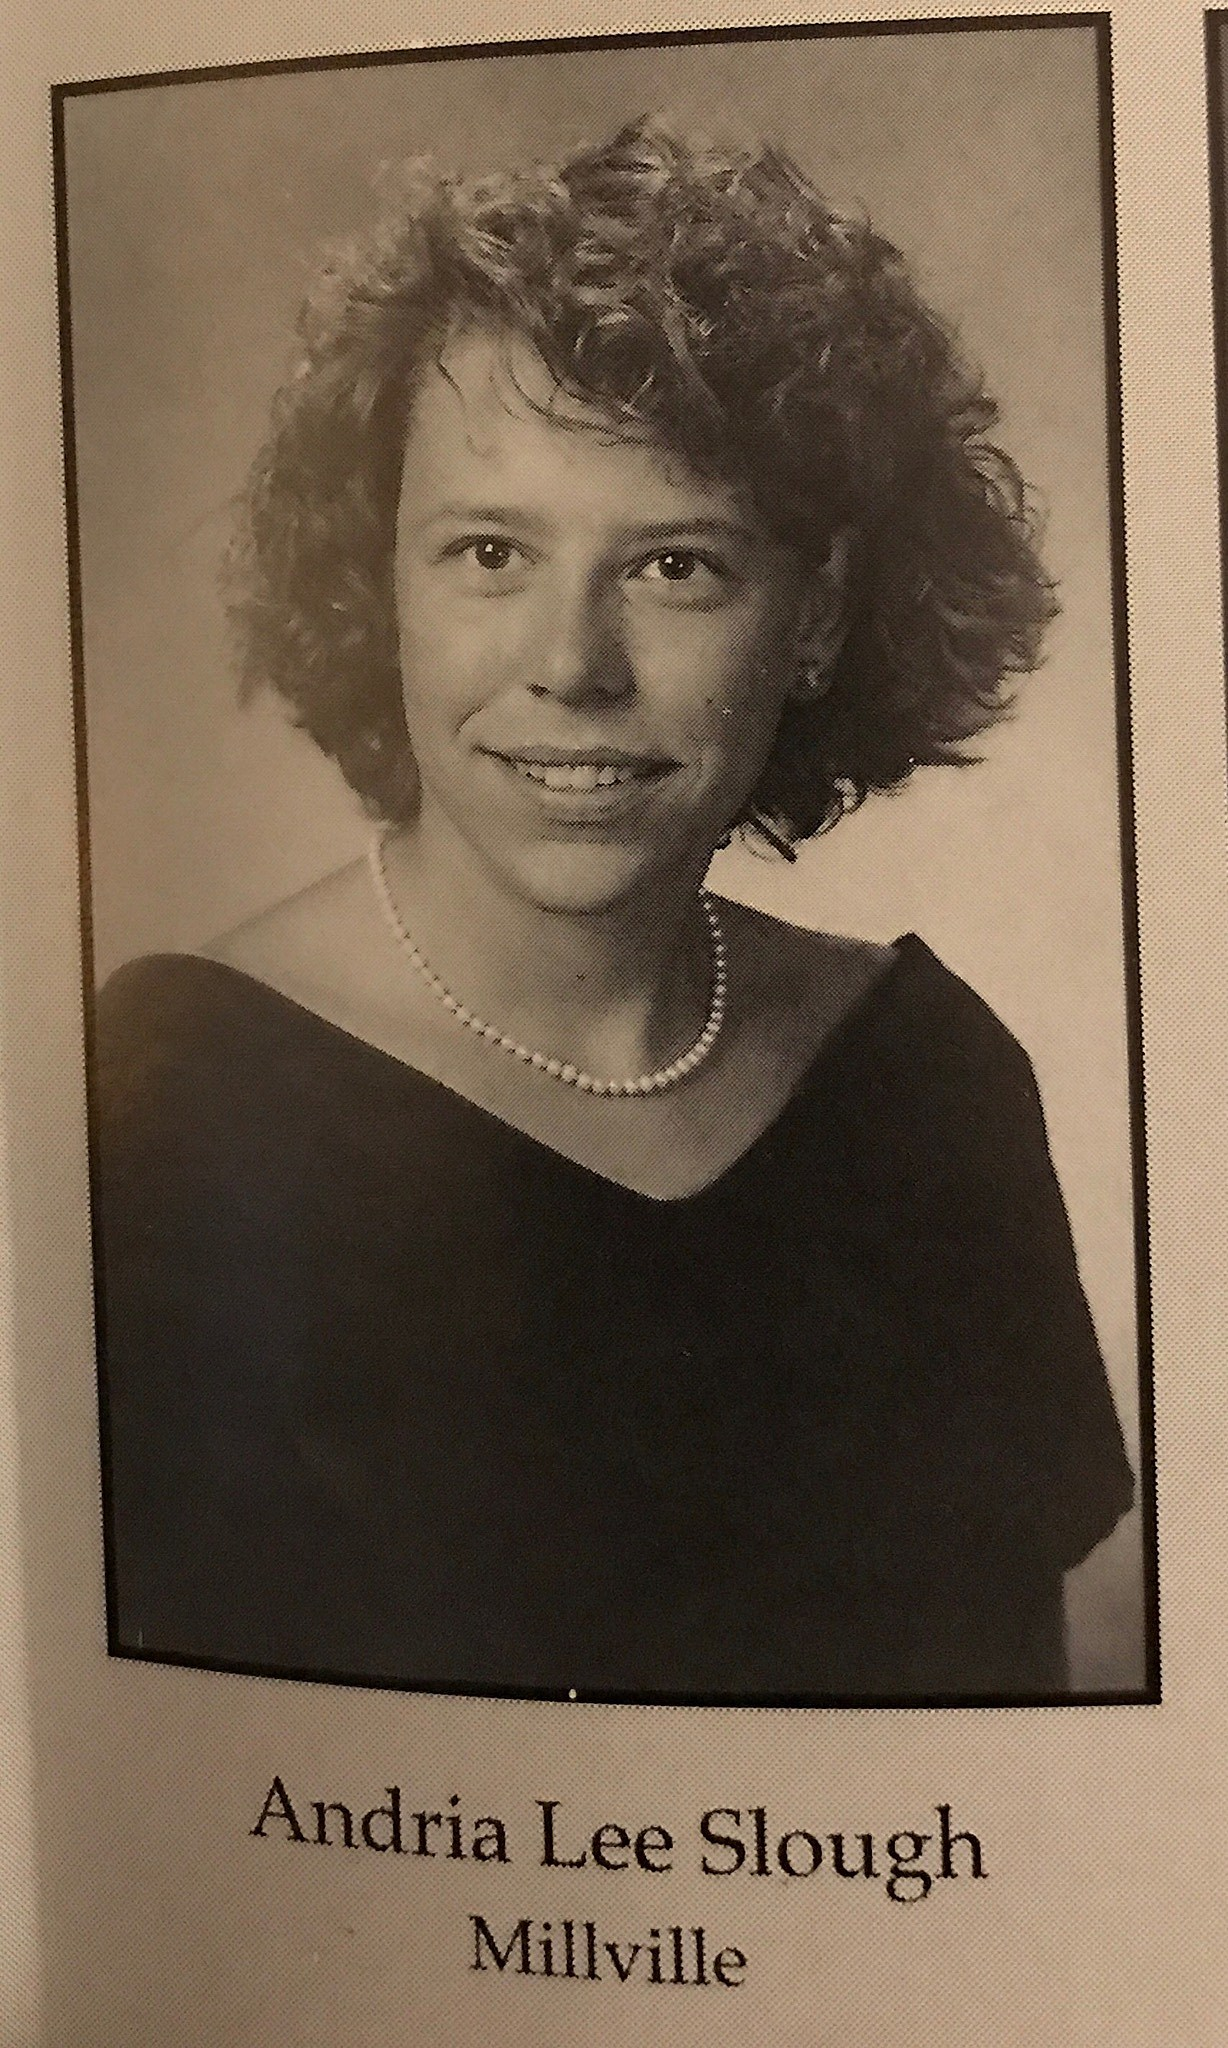 Andria Slough's 1994 Millville Senior High School yearbook photo that I took myself from my husband's yearbook. They graduated together! (Heather DeLuca)